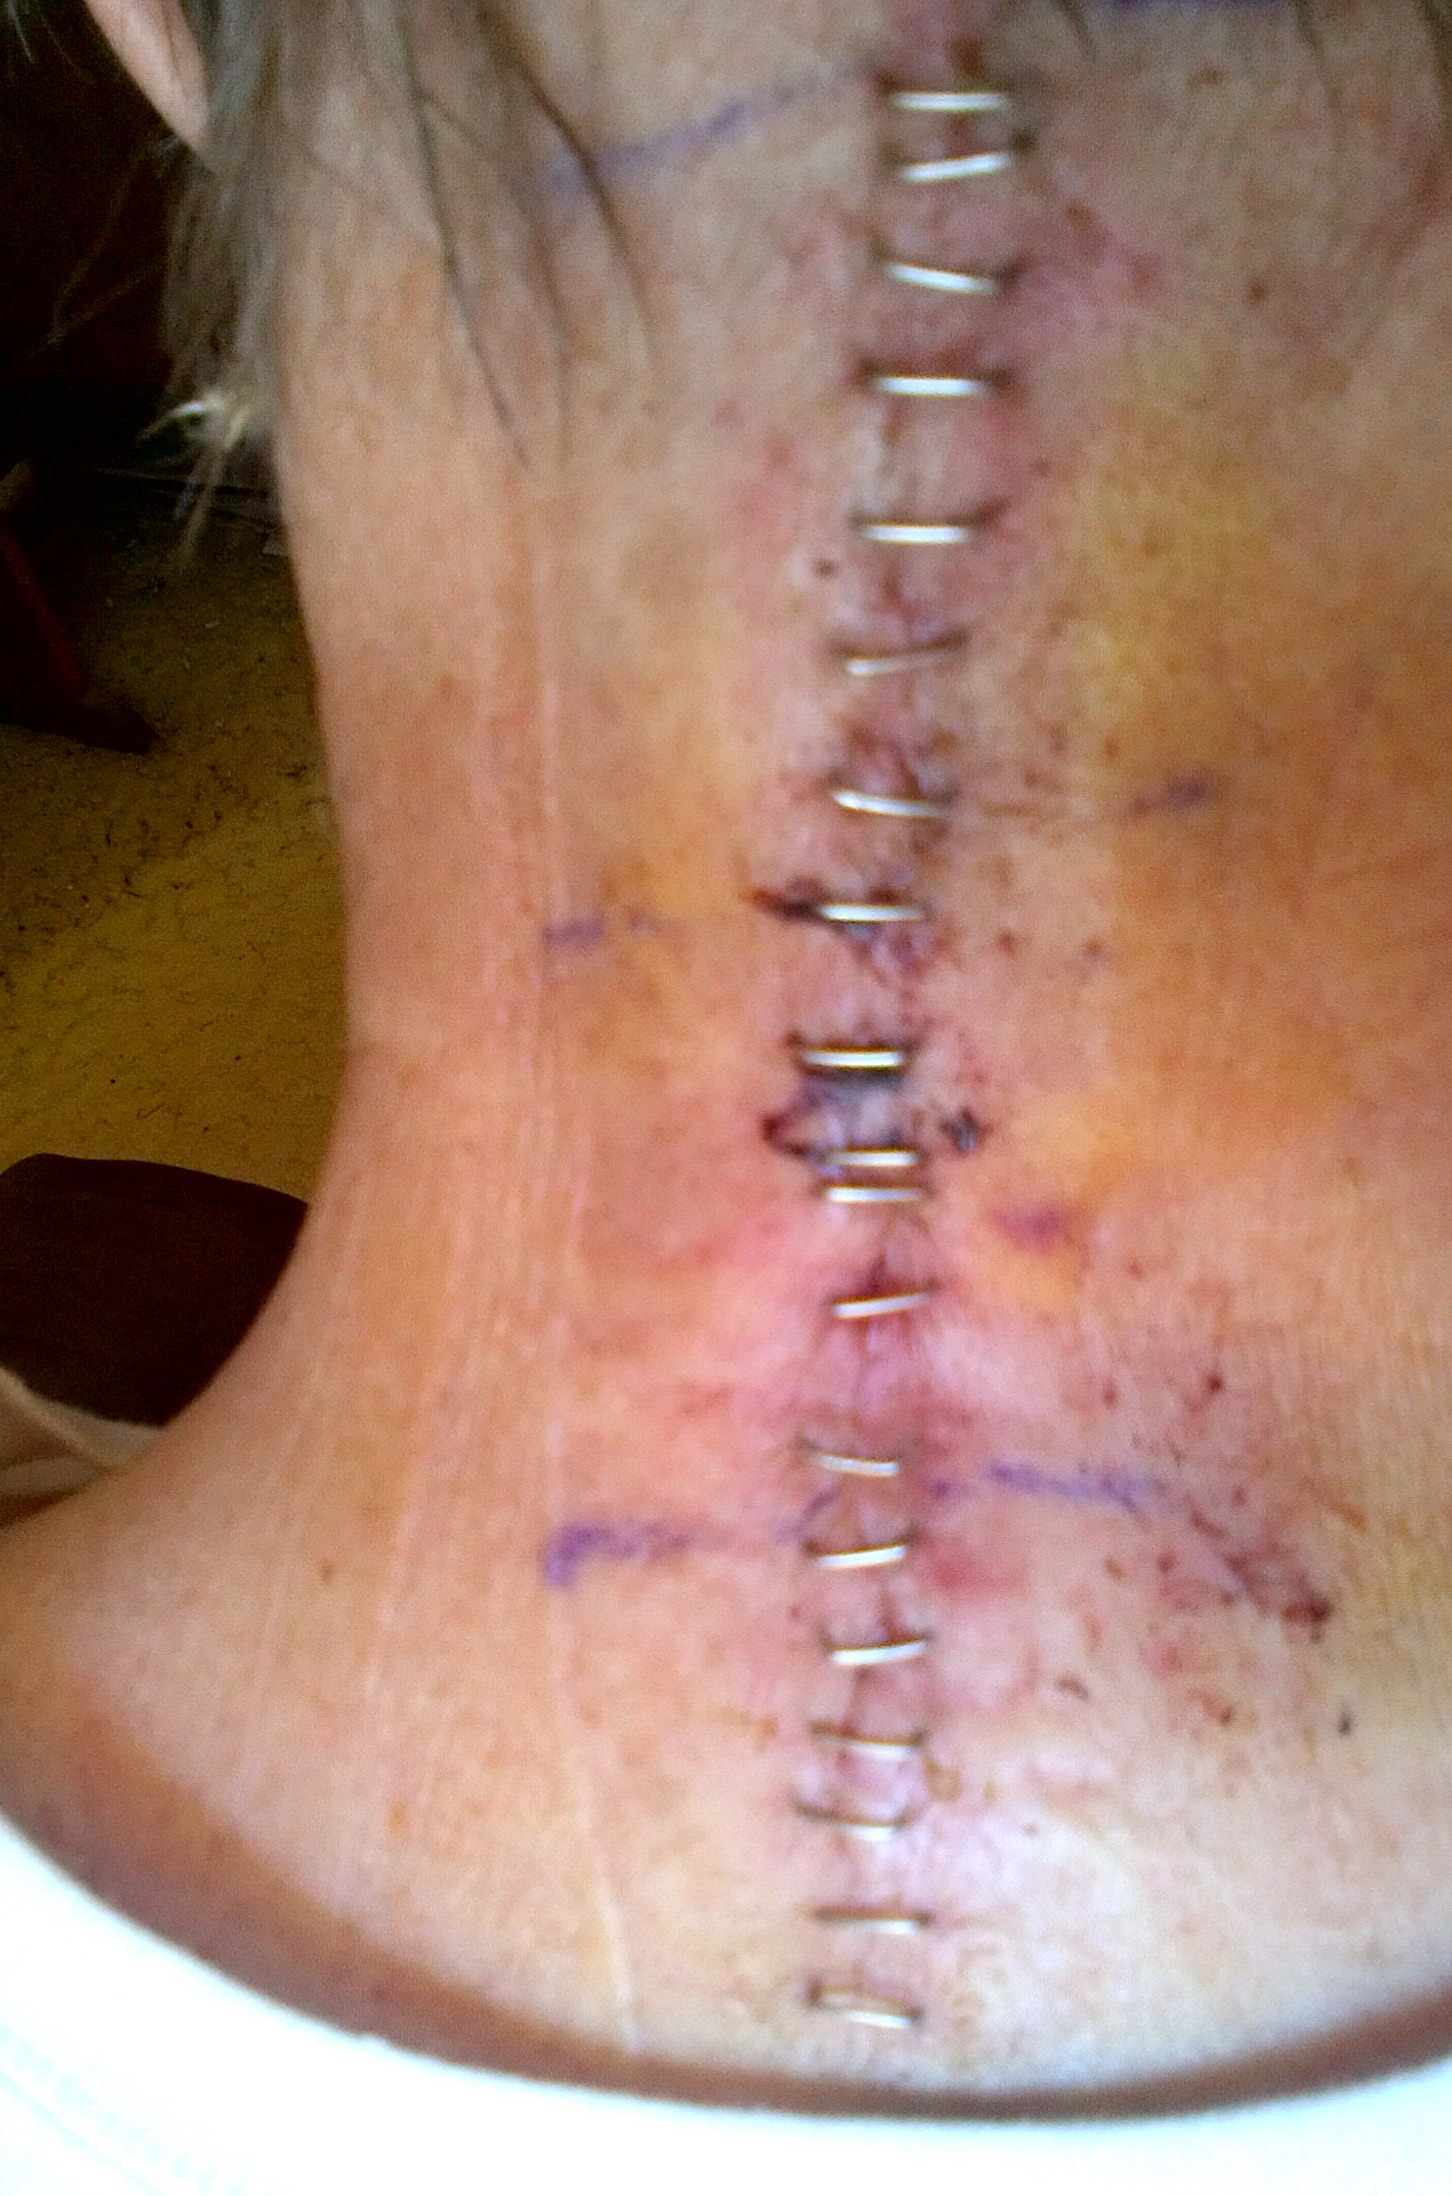 Neck incision for posterior C1.C2 cervical fusion (5 days post operation)